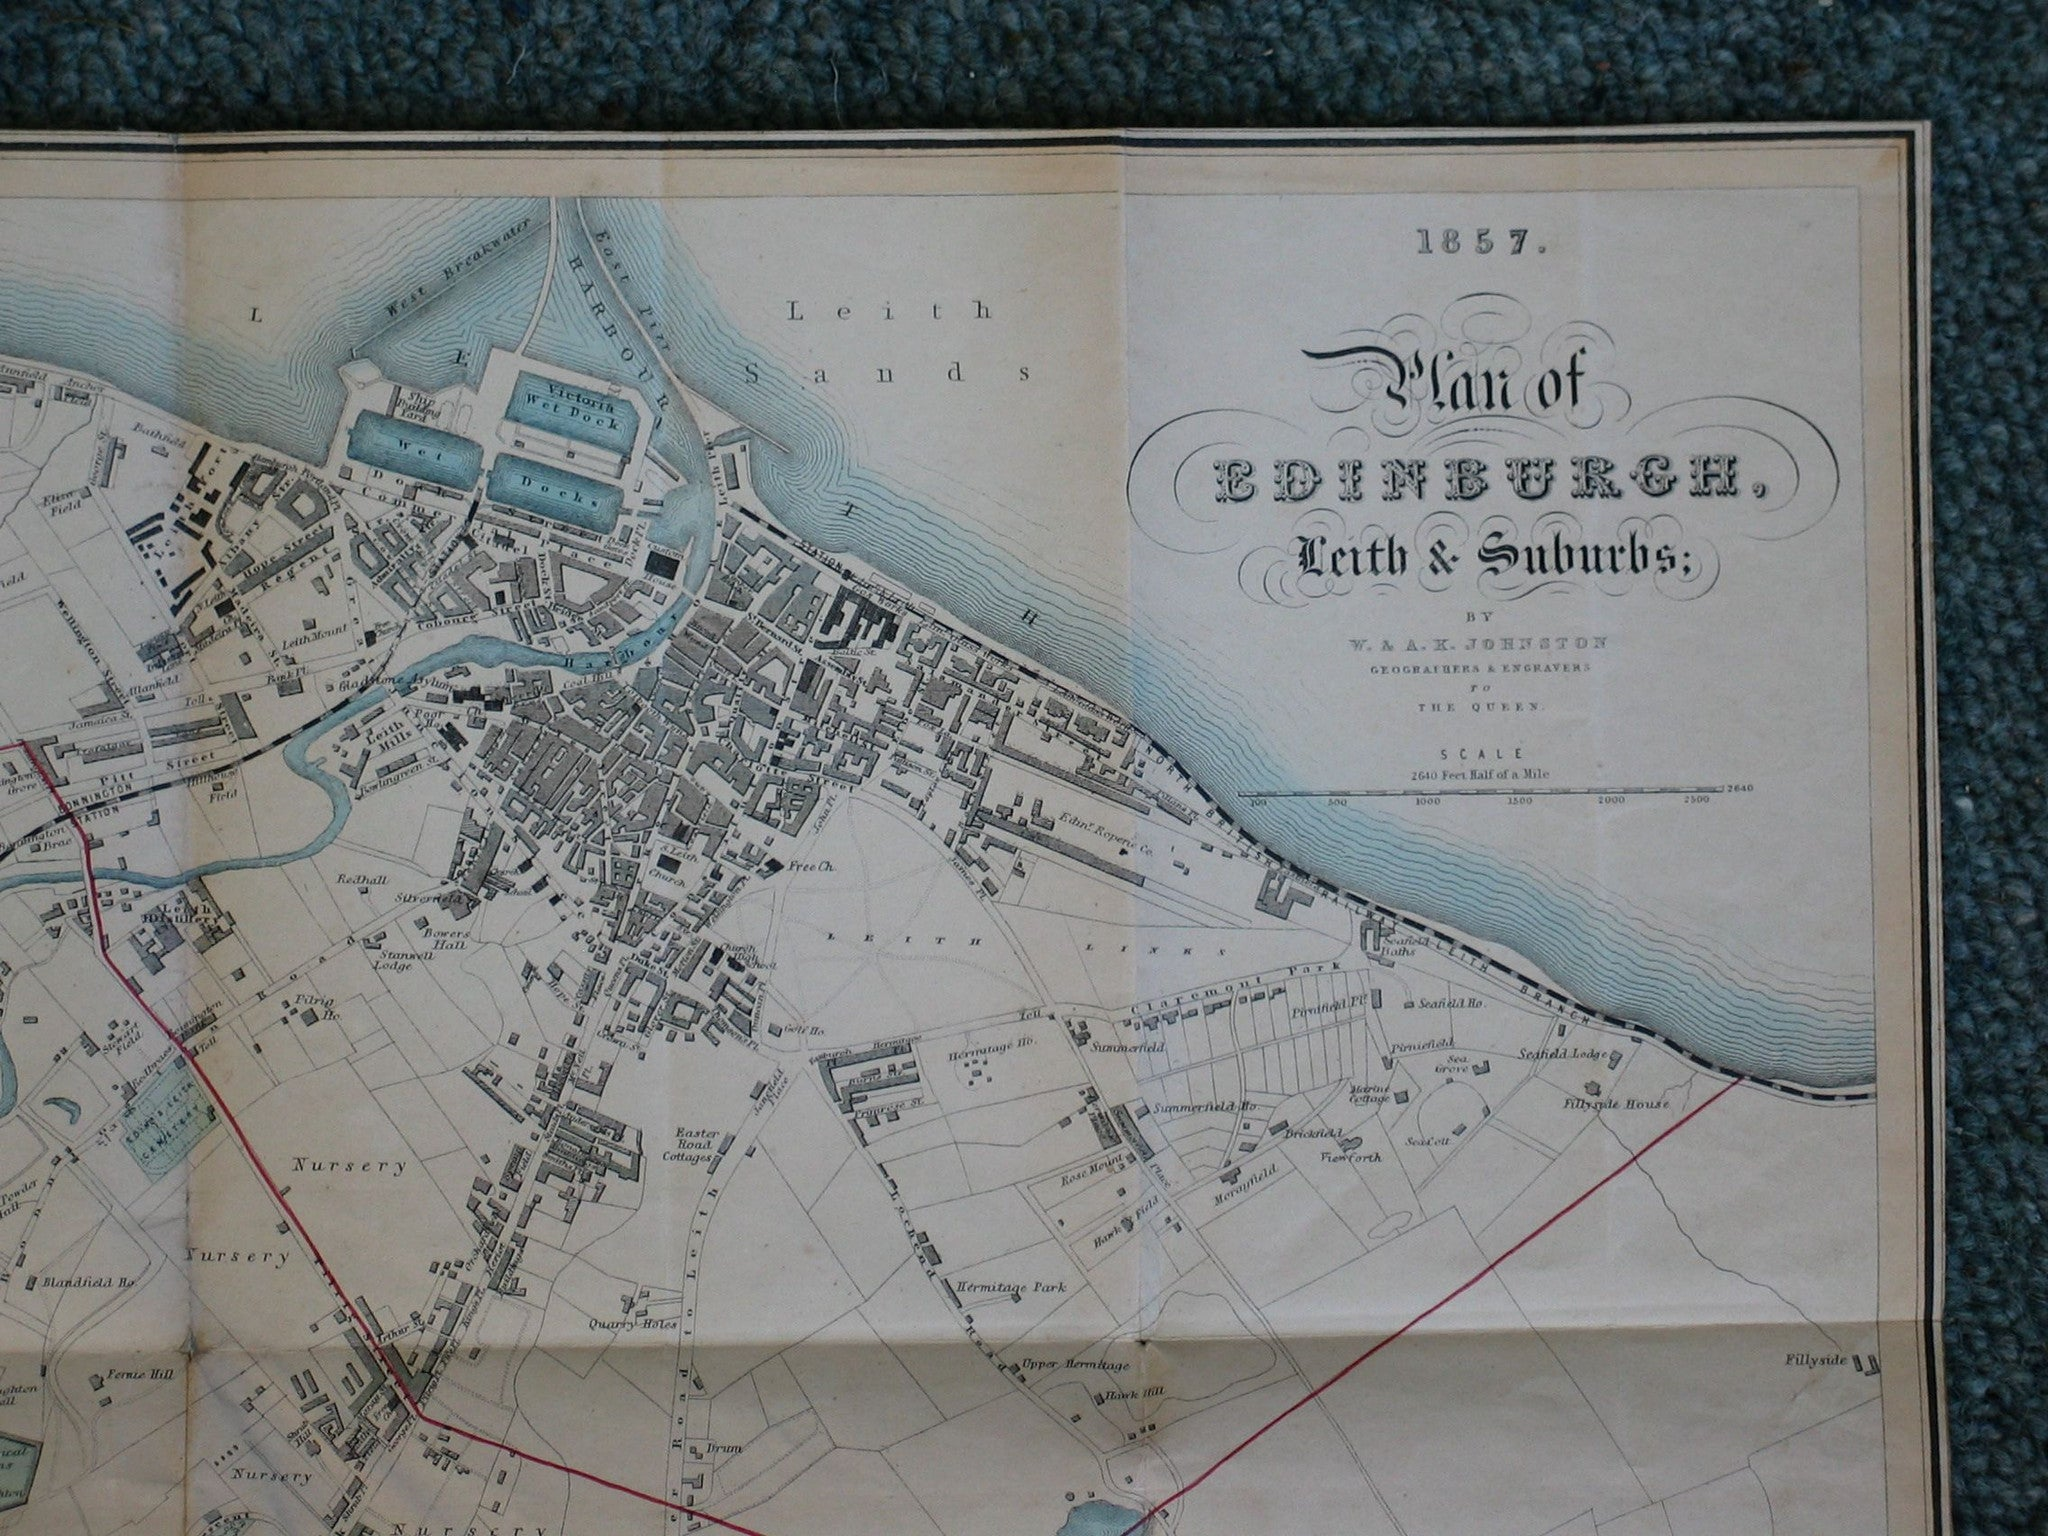 Plan of the City of Edinburgh